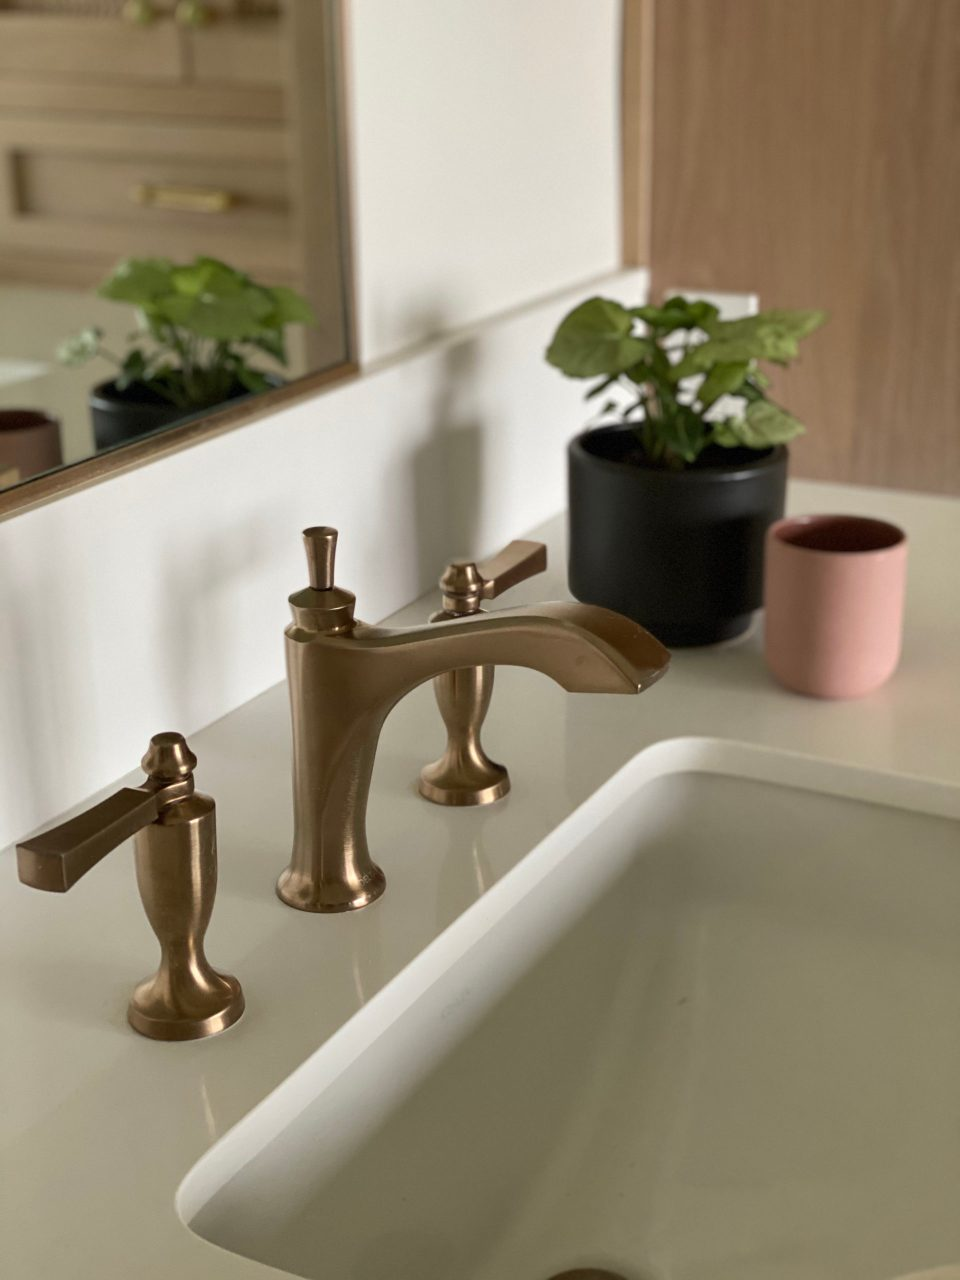 The Dorval faucet with lever handles, up close